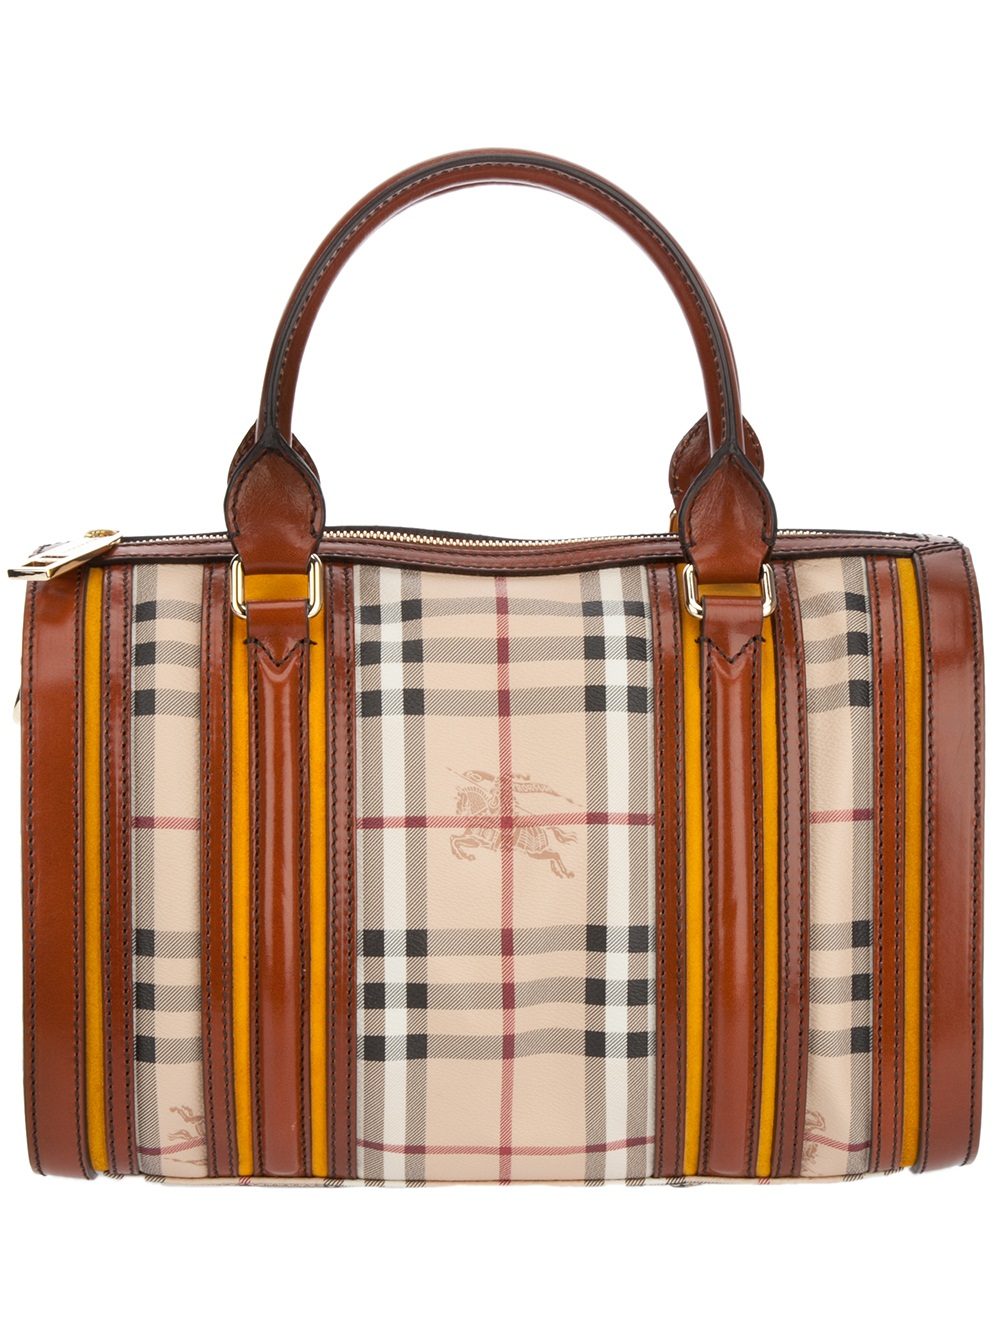 9a577af509f6 Lyst - Burberry Haymarket Check Bowling Bag in Brown